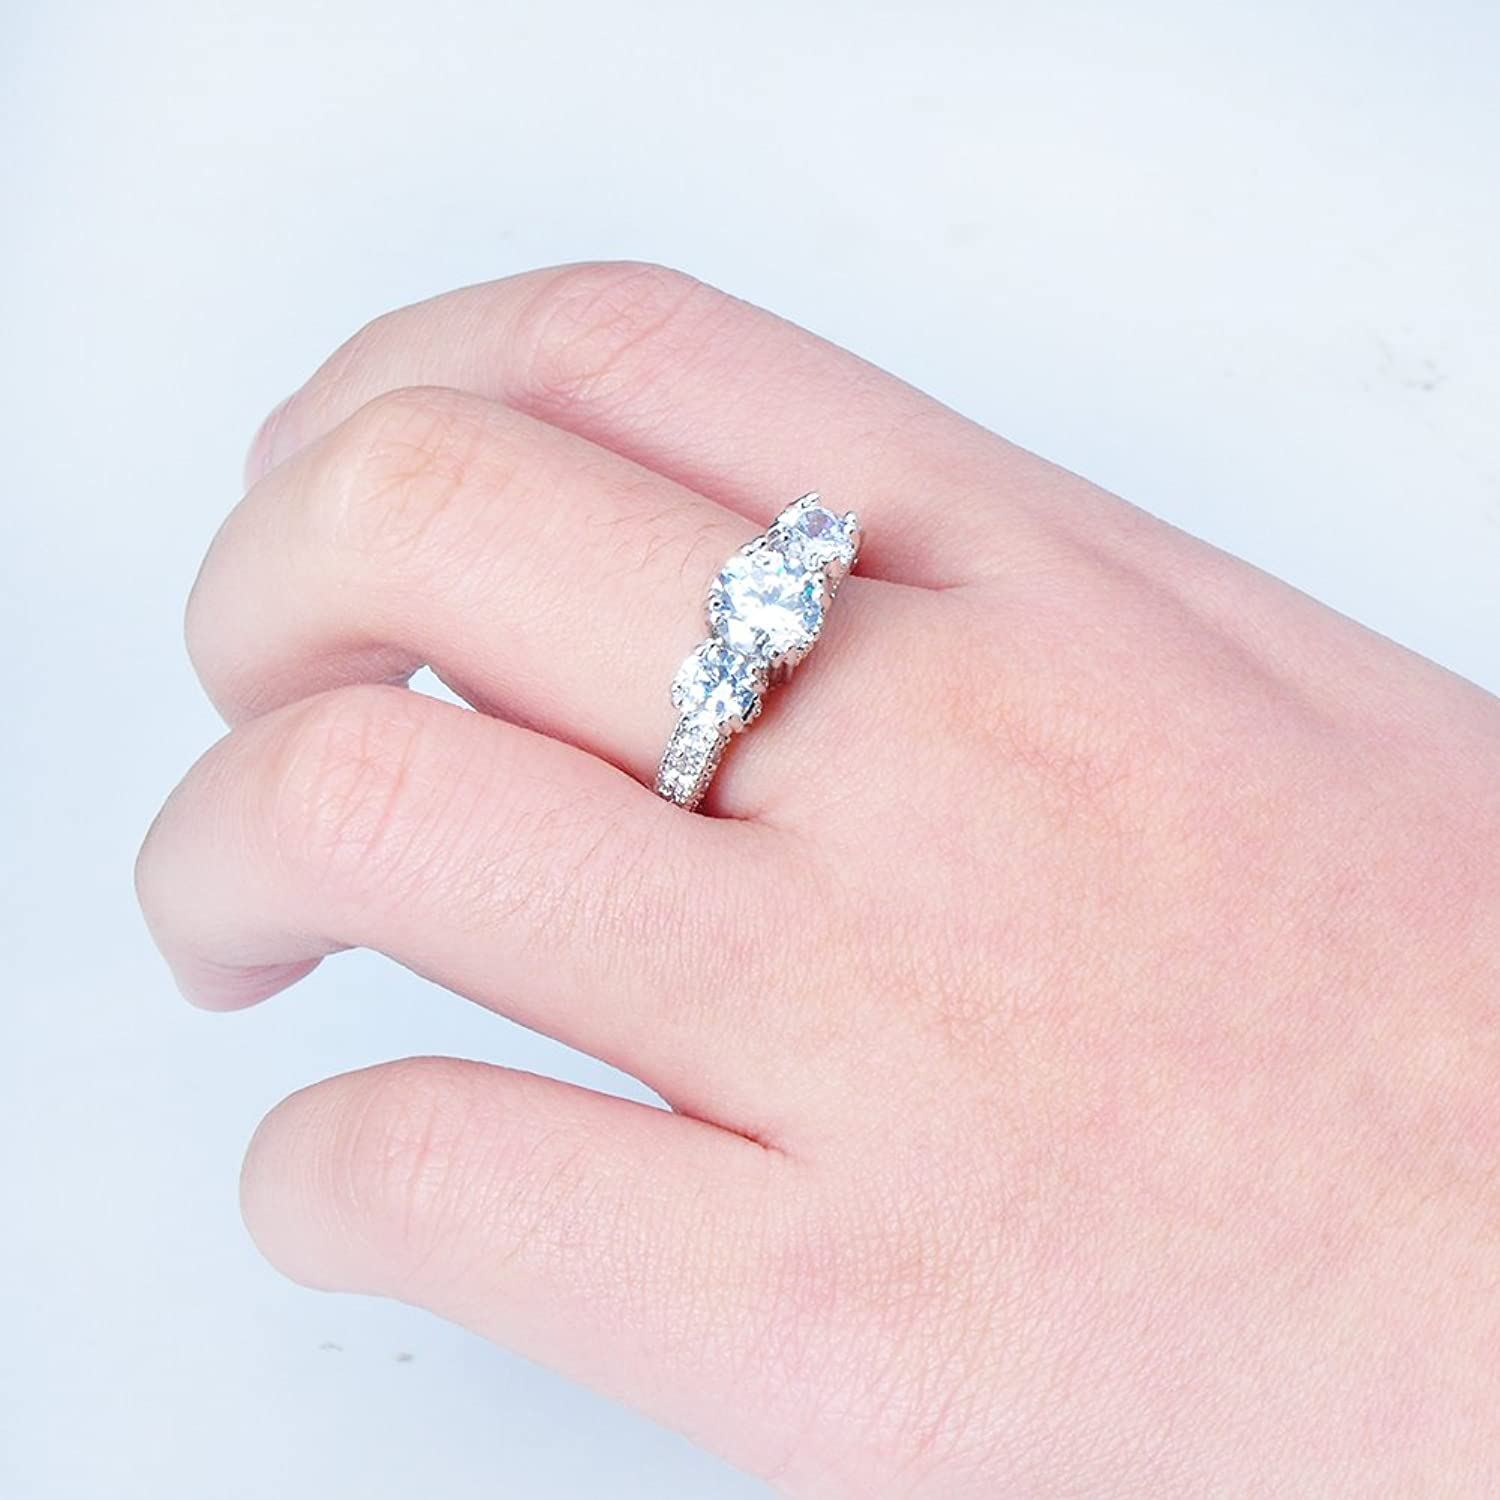 Amazon.com: Rongxing Jewelry 925 Promise Silver Ring Women\'s White ...